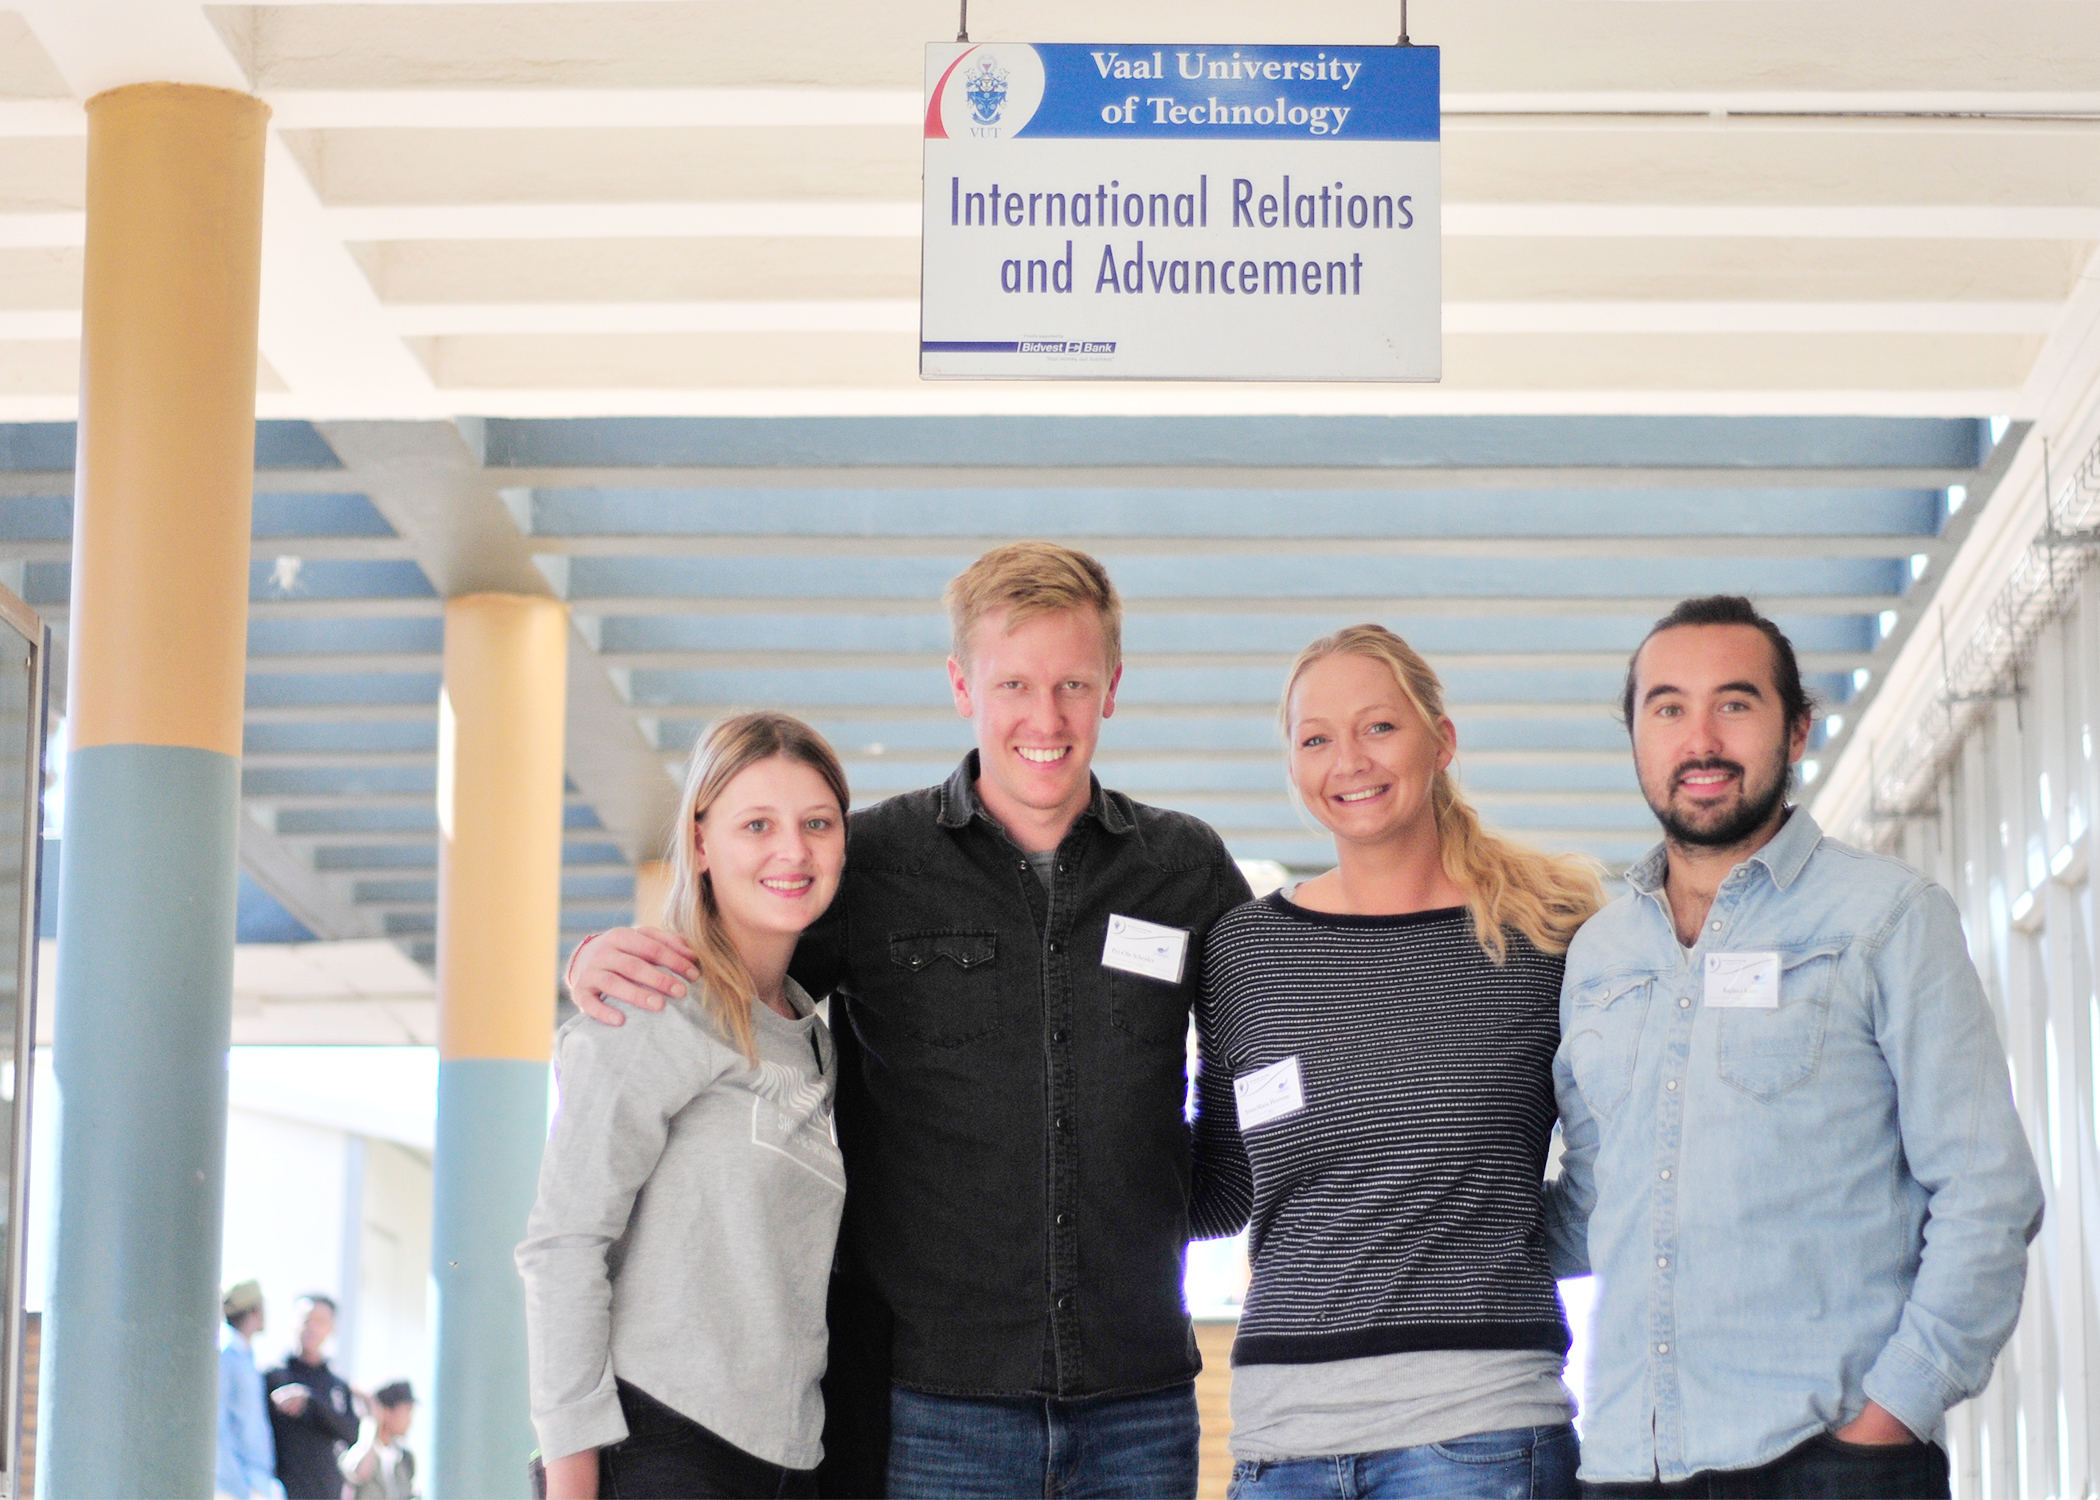 German exchange students joining us this semester – Vaal University